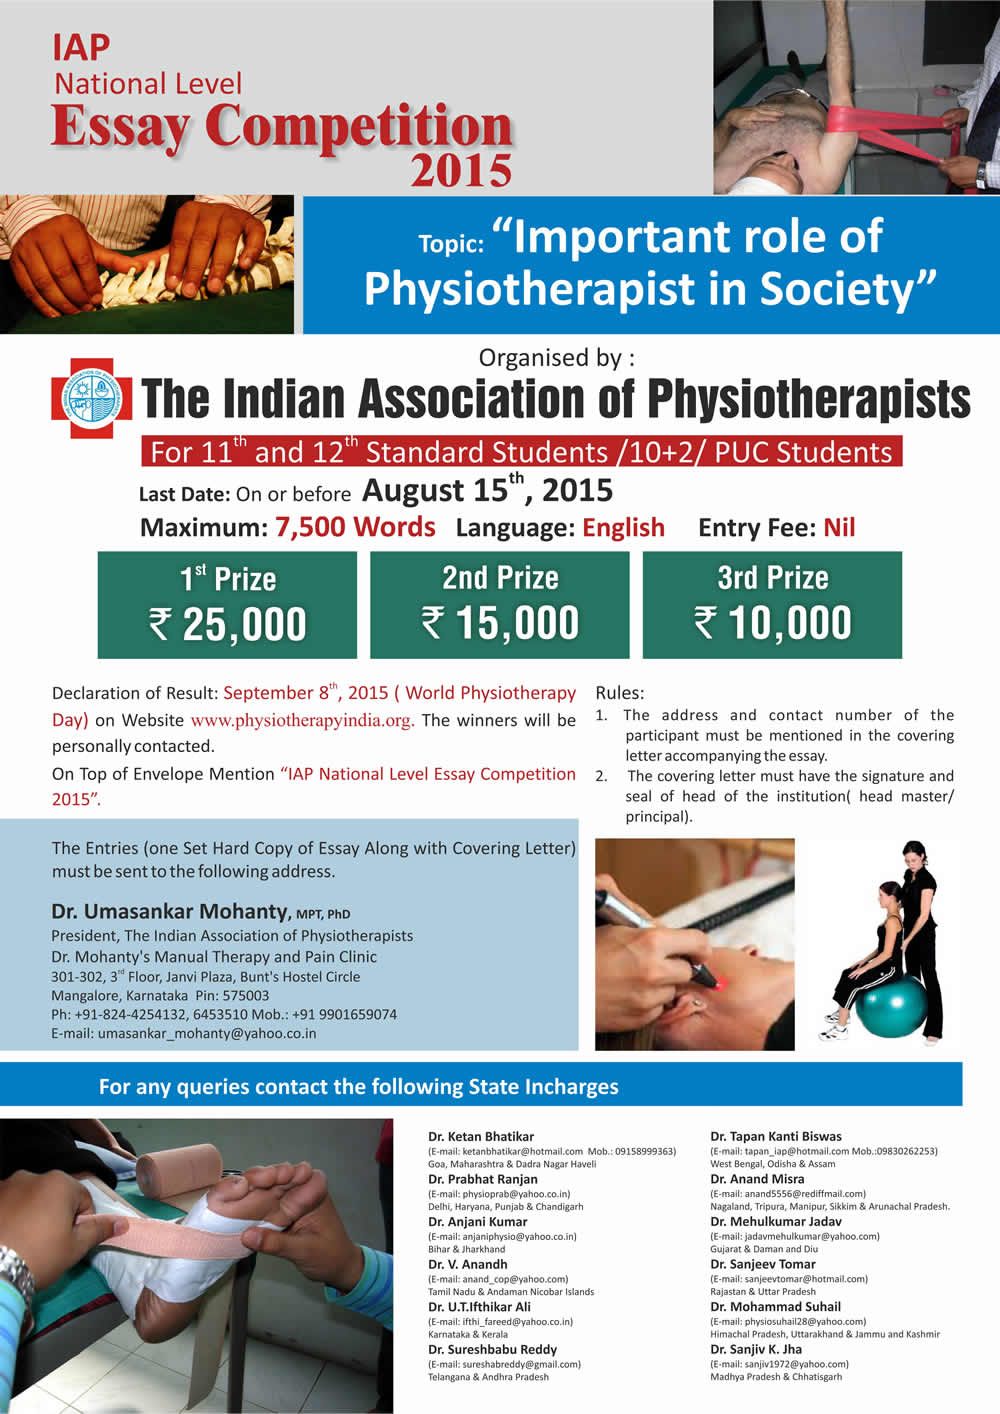 i a p n association of physiotherapist iap national requesting the physiotherapists physiotherapy students college owners stake holders and well wishers of the noble physiotherapy profession to kindly